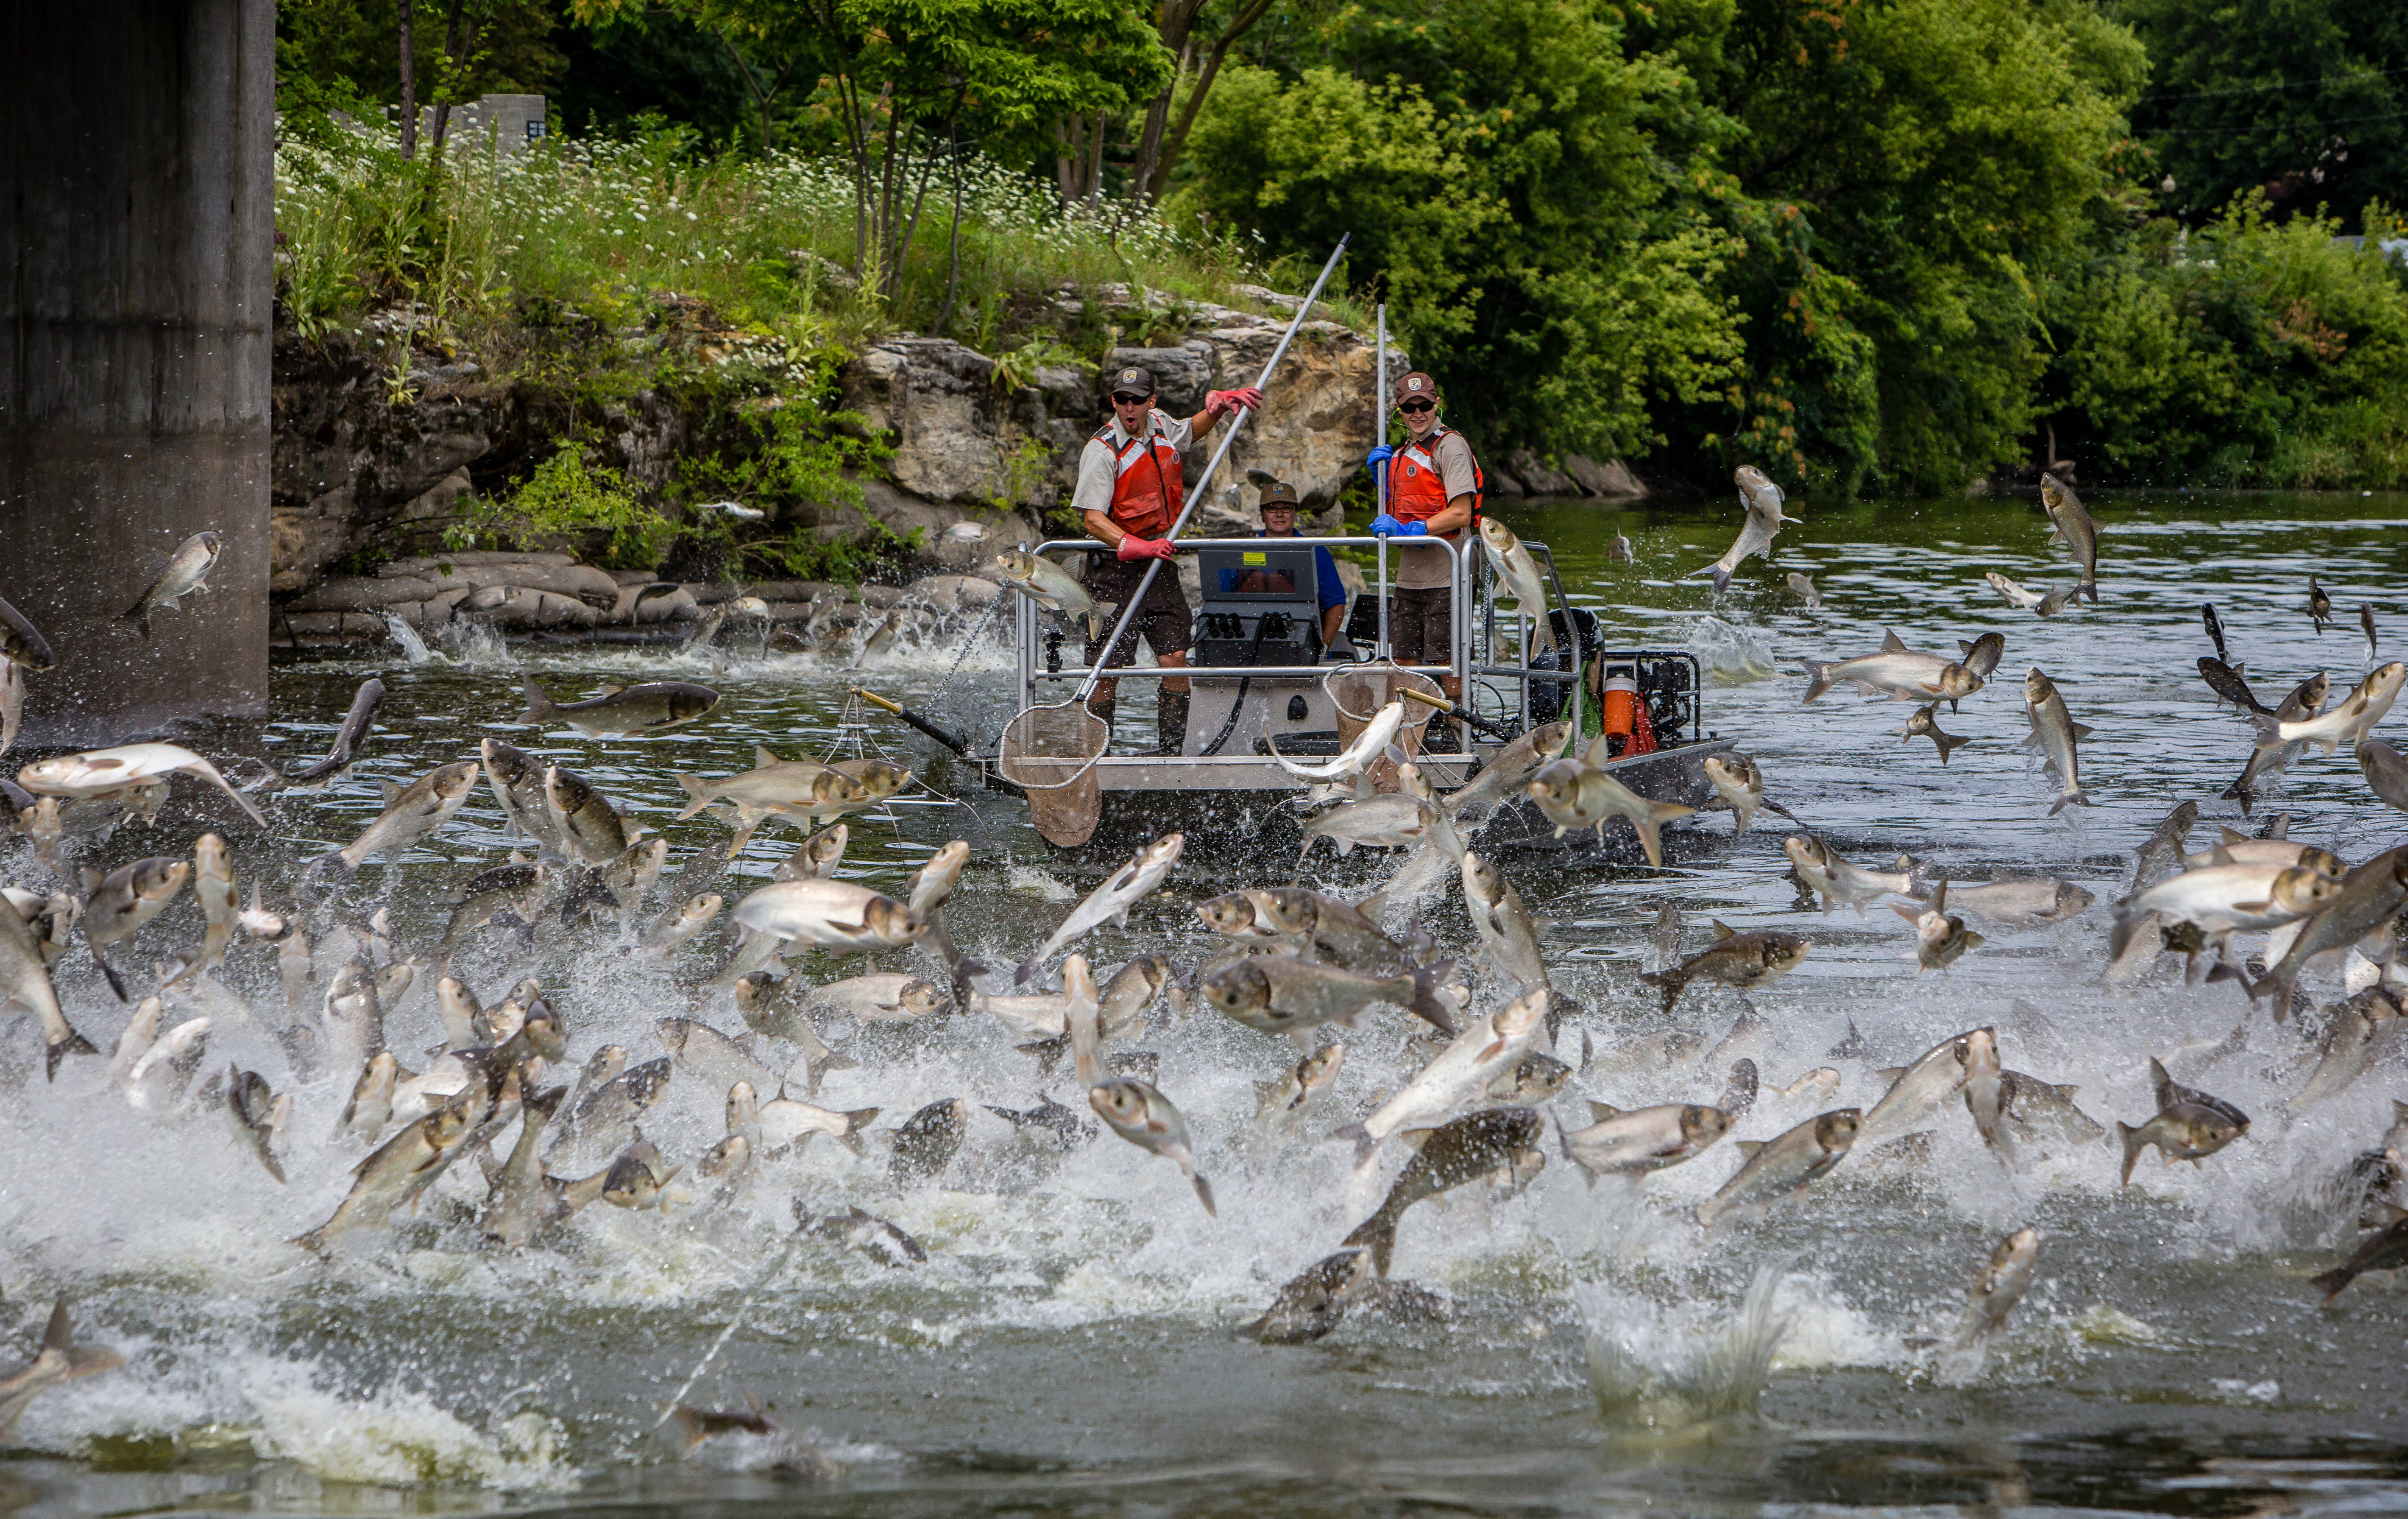 Fox News: Costly effort to fight invasive Asian Carp includes 'Carp Cowboys' and high-tech dam project